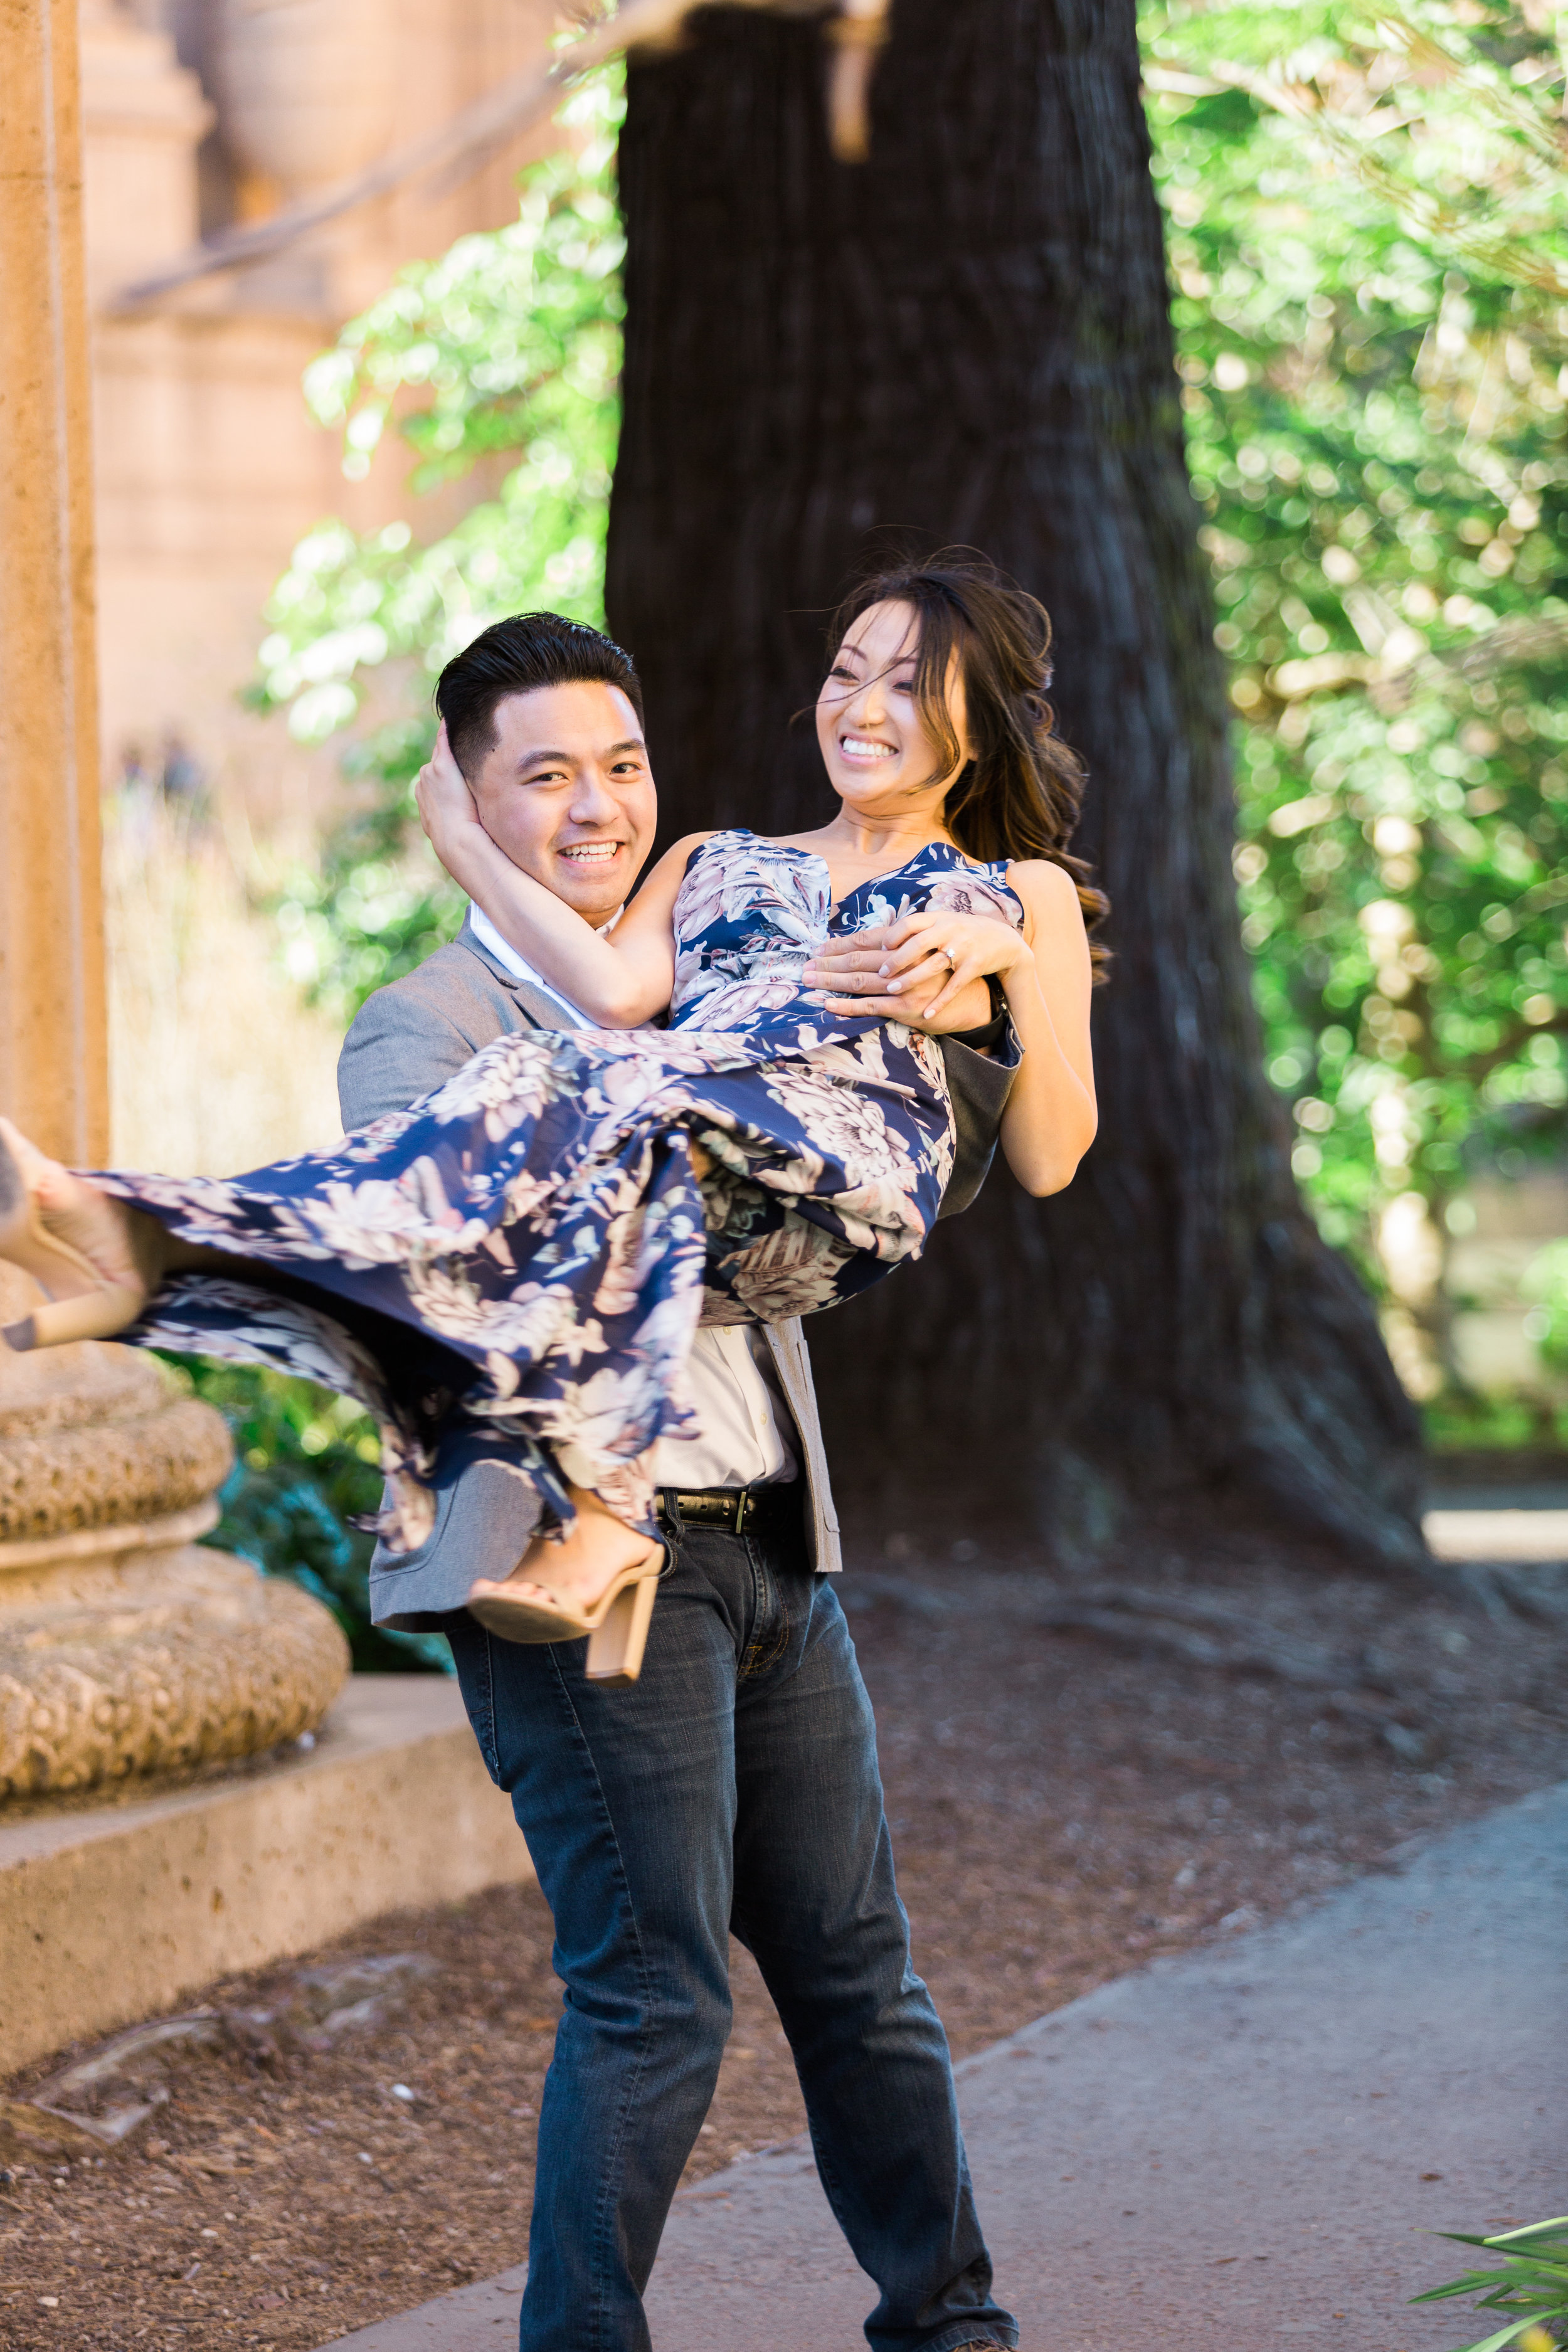 San-Francisco-Engagement-Session-Tara-Nichole-Photo-16.jpg